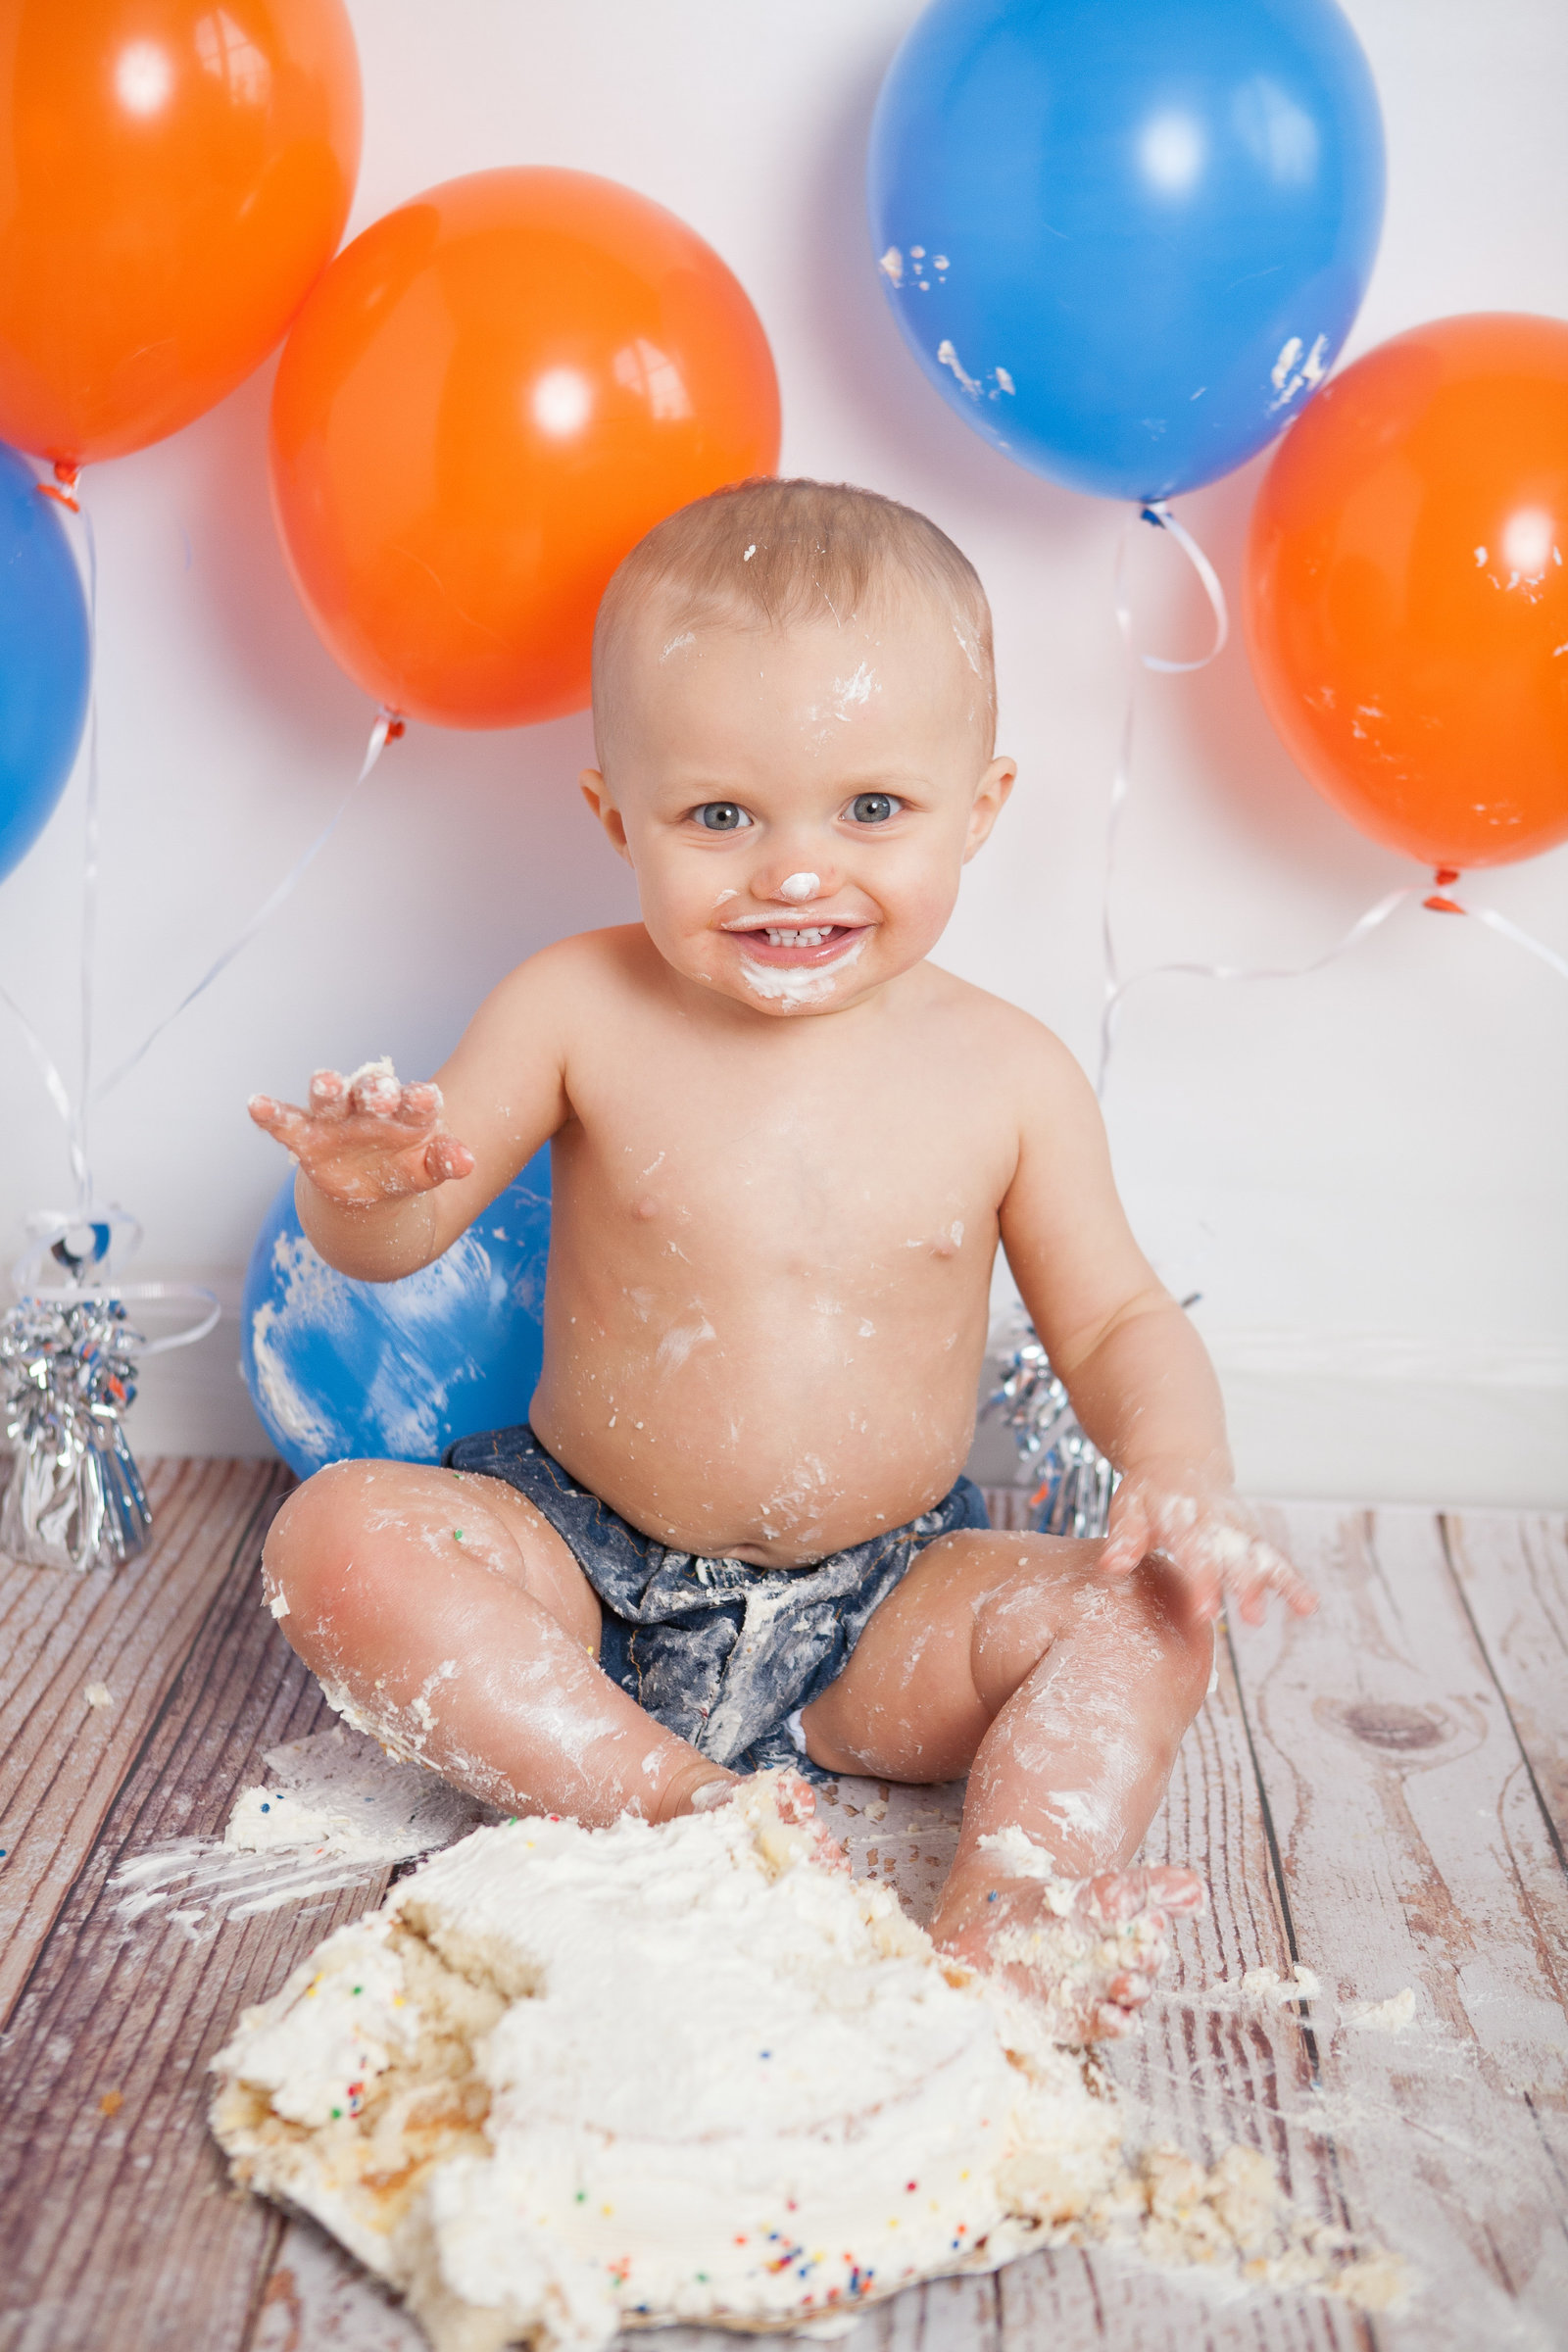 Trumbull CT baby boy first birthday cake smash by Hudson Valley photographer in Cornwall NY photography studio